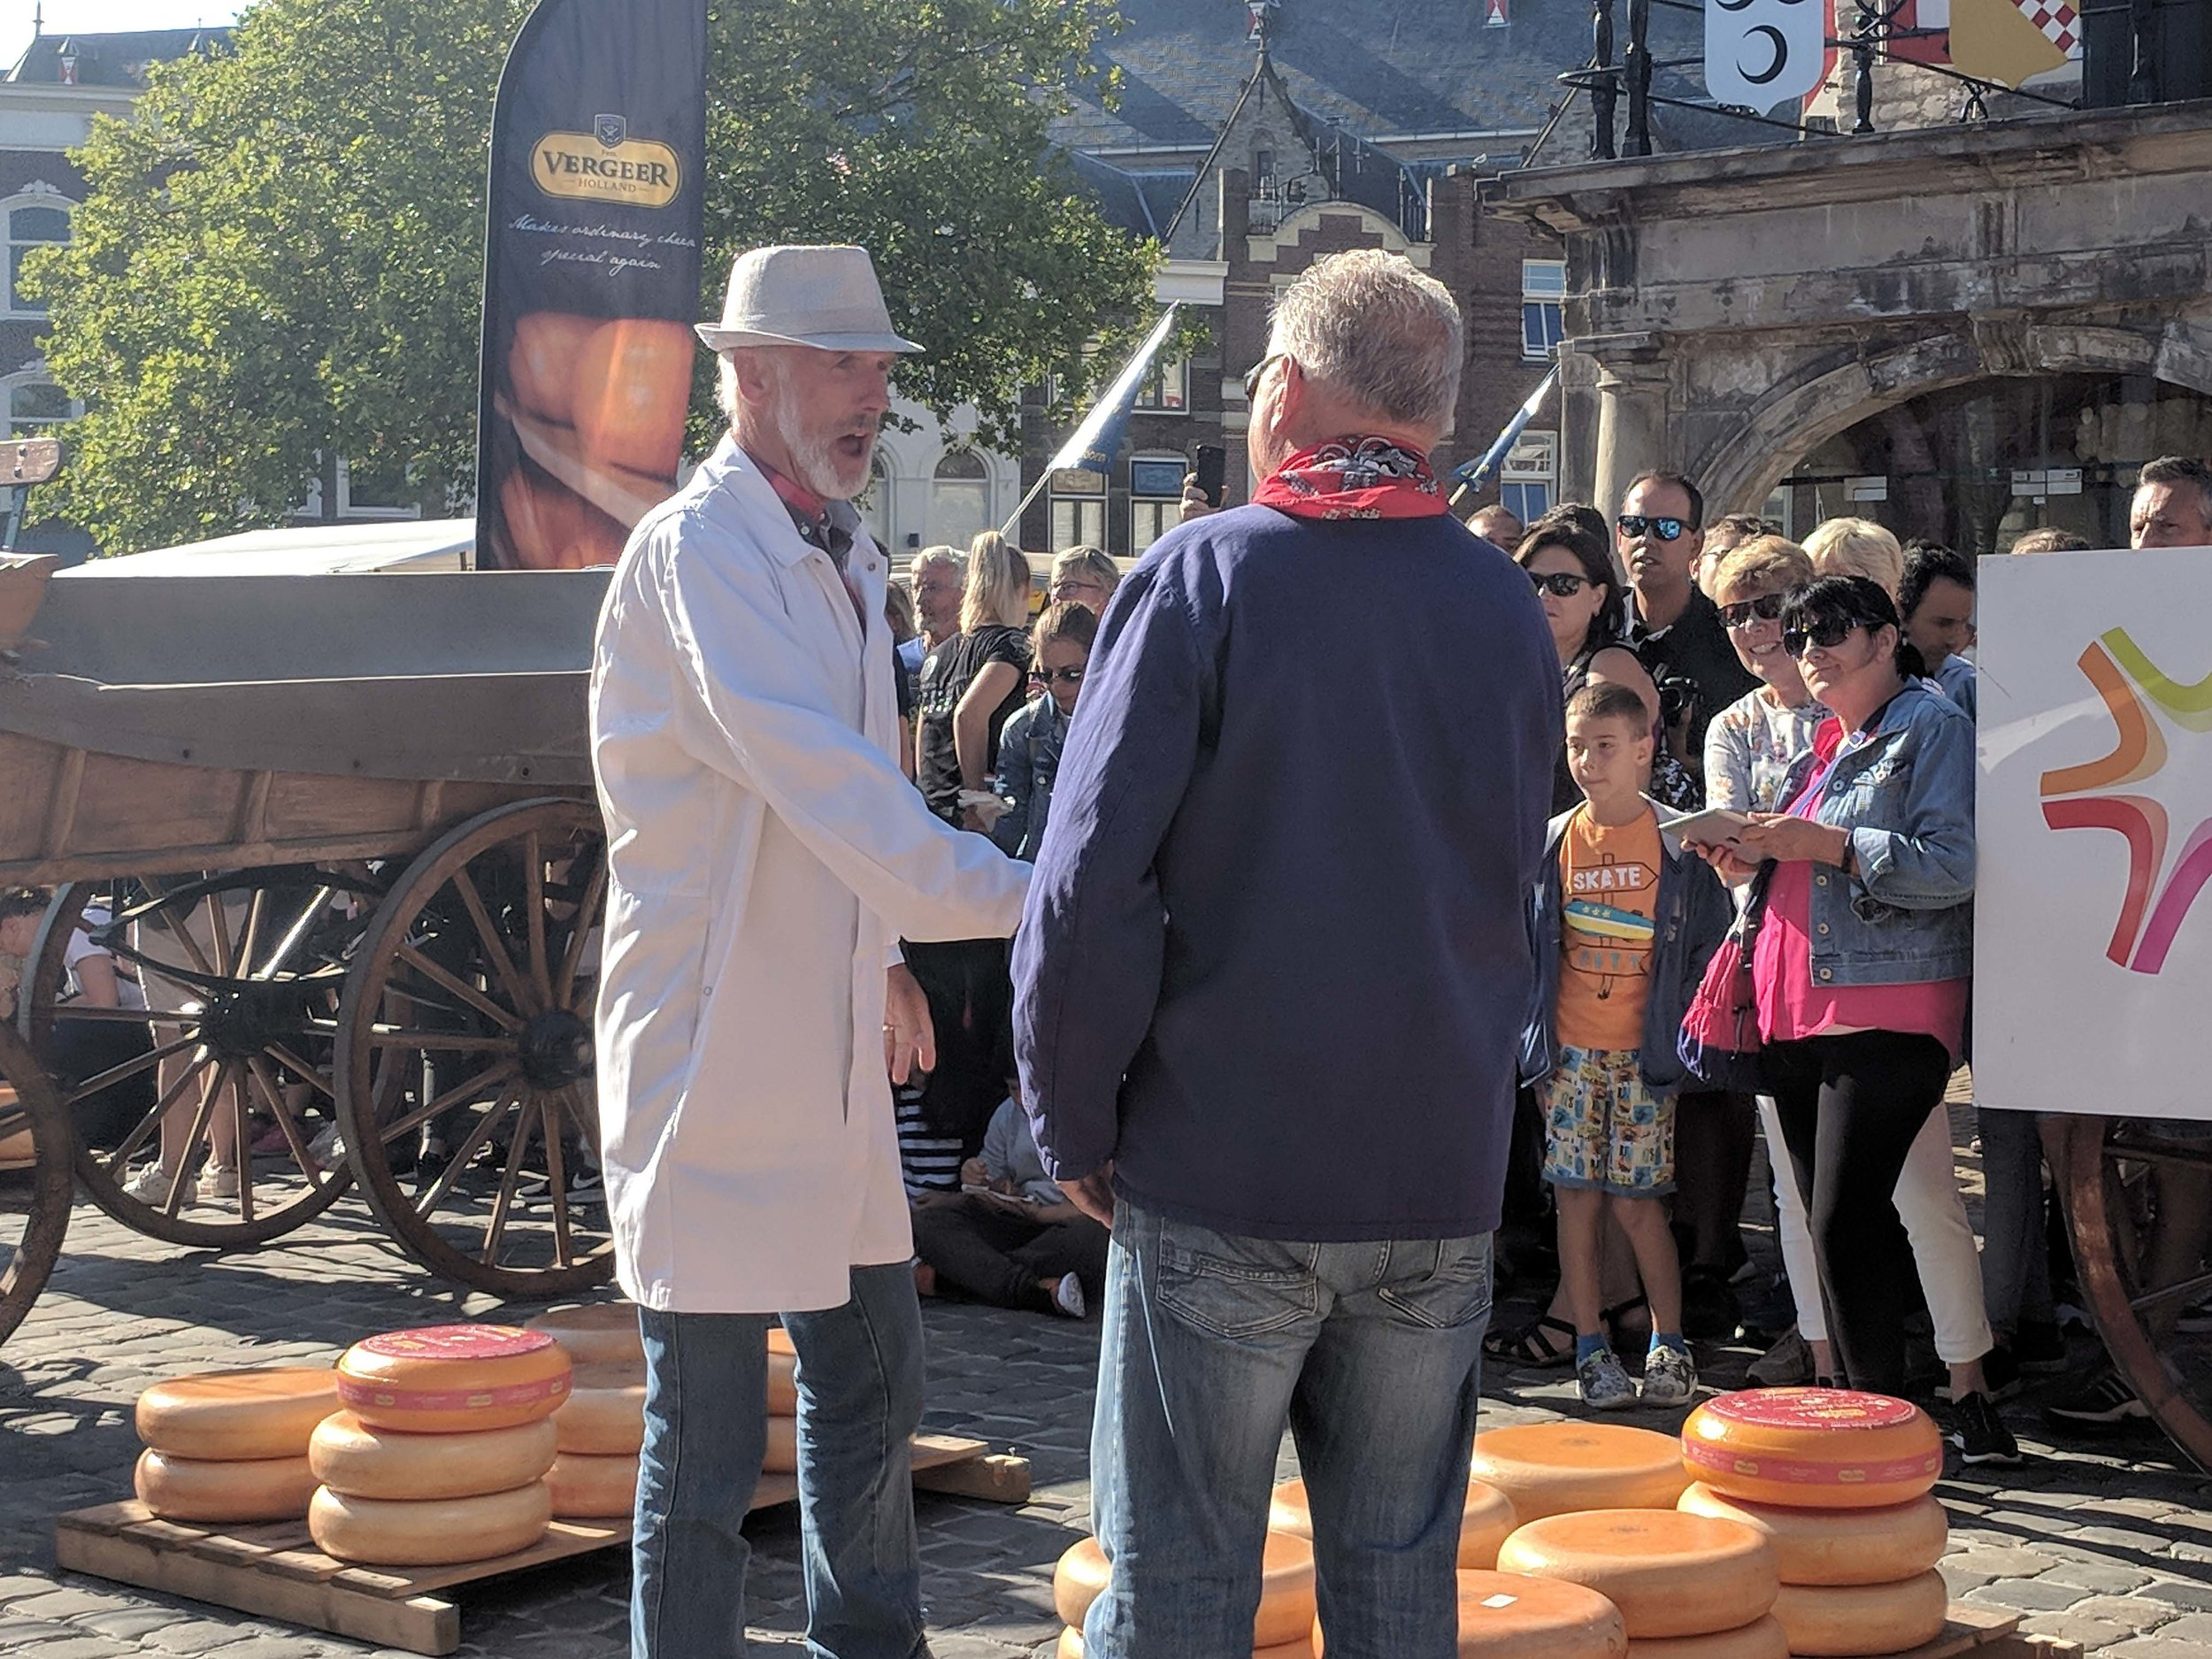 Negotiating the price of cheese